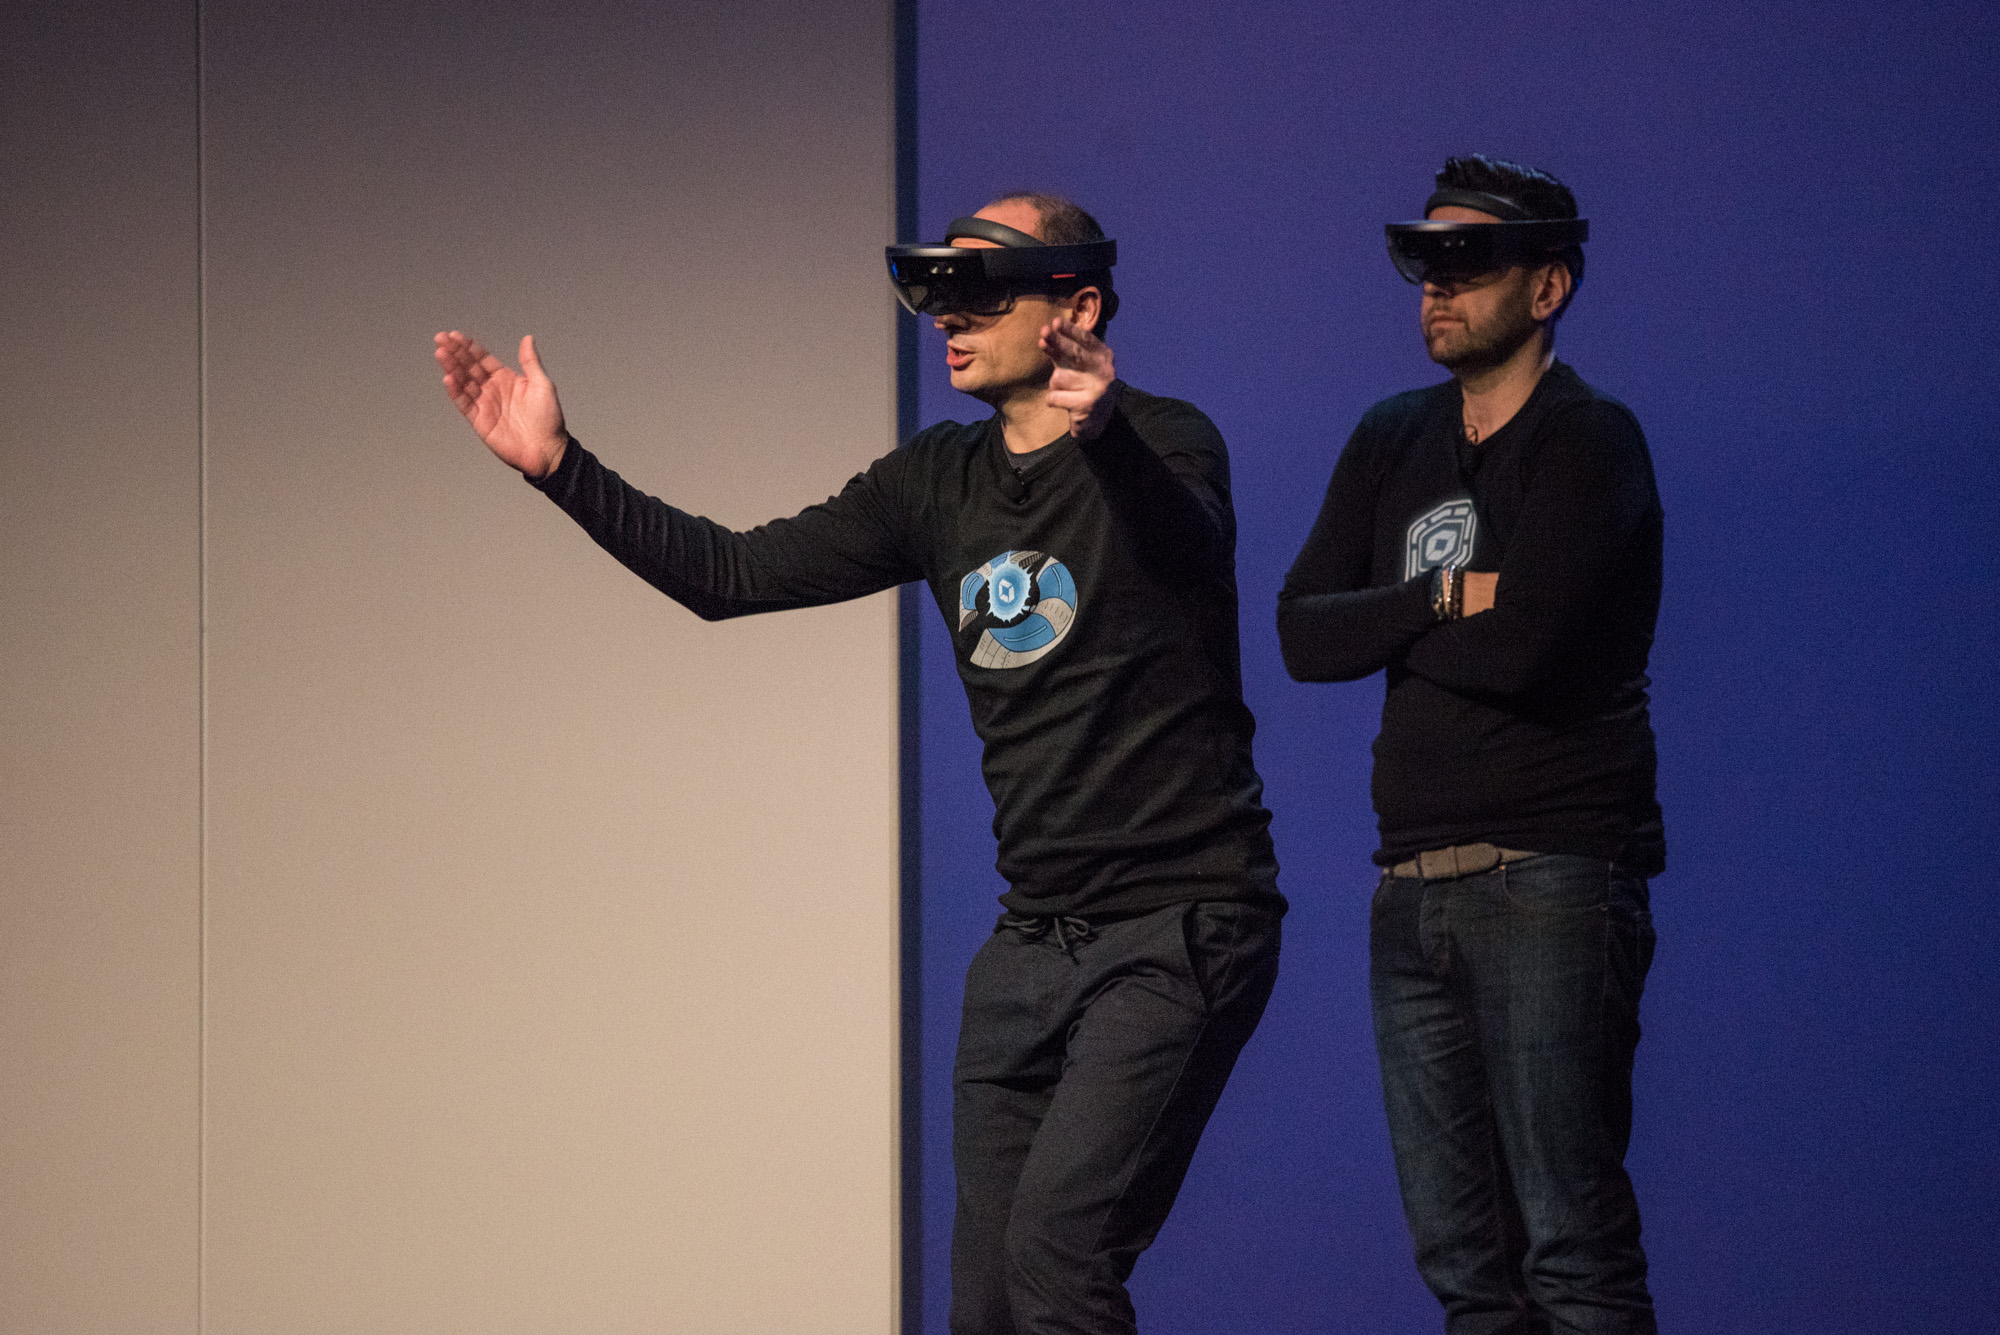 Microsoft Hololens action at perform main stage